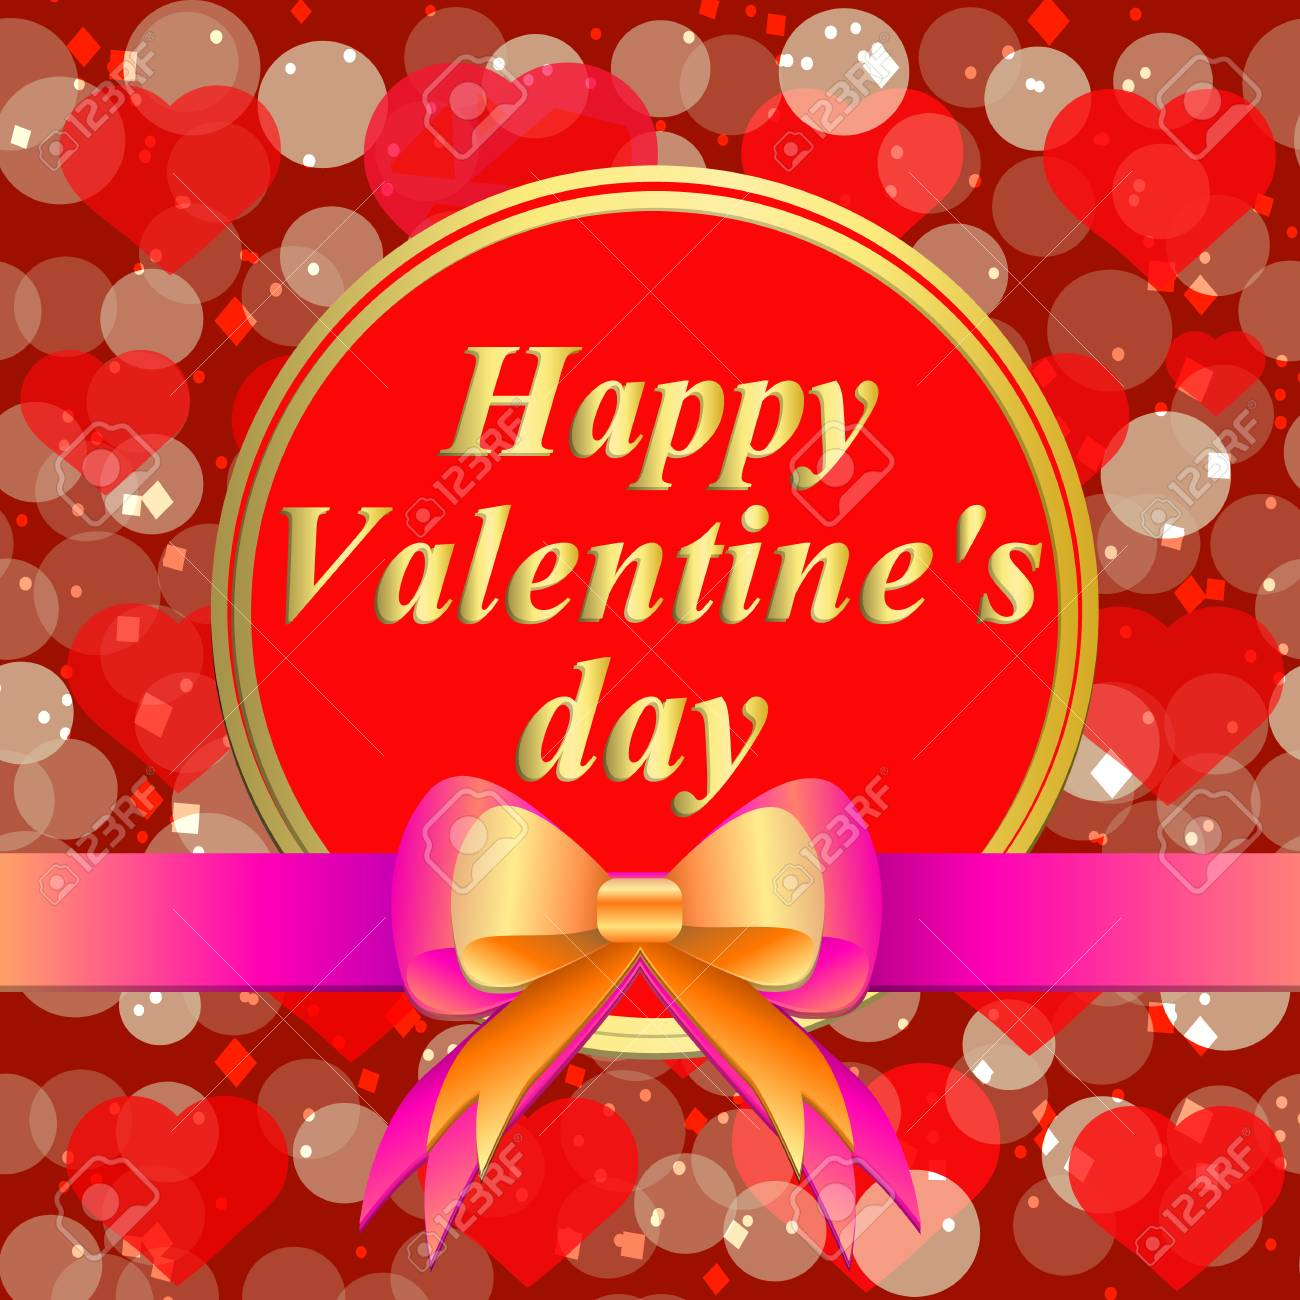 Happy Valentines Day Greeting Card Brightly Colorful Illustration